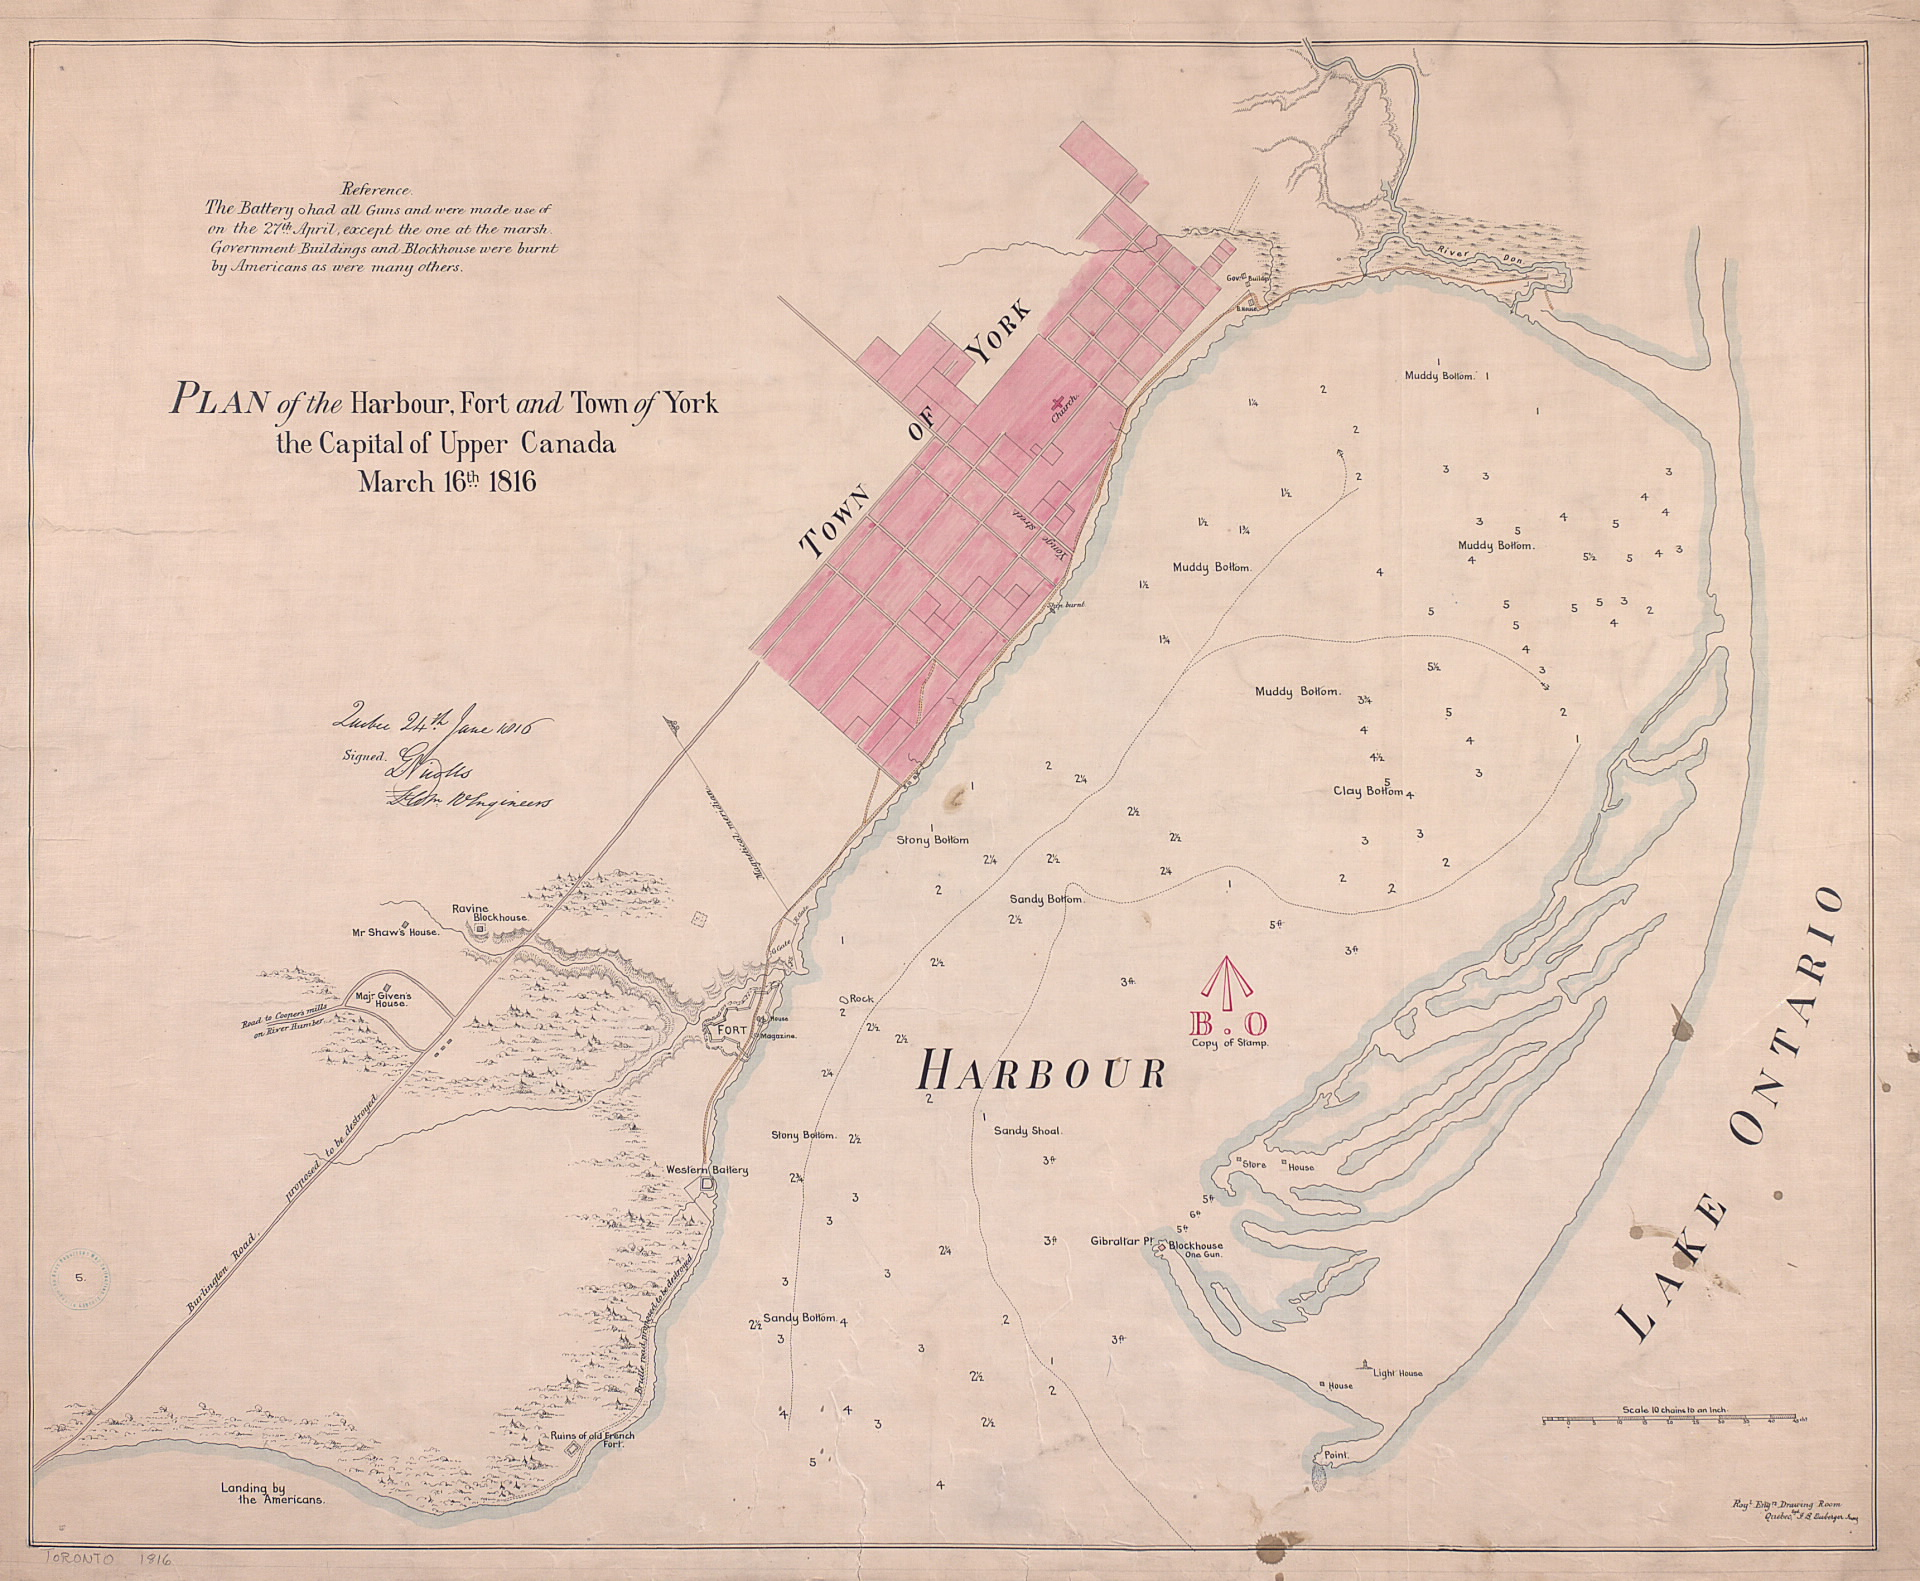 Map Of York Canada.Historical Maps Of Toronto 1816 Nicolls Duberger Plan Of The Fort